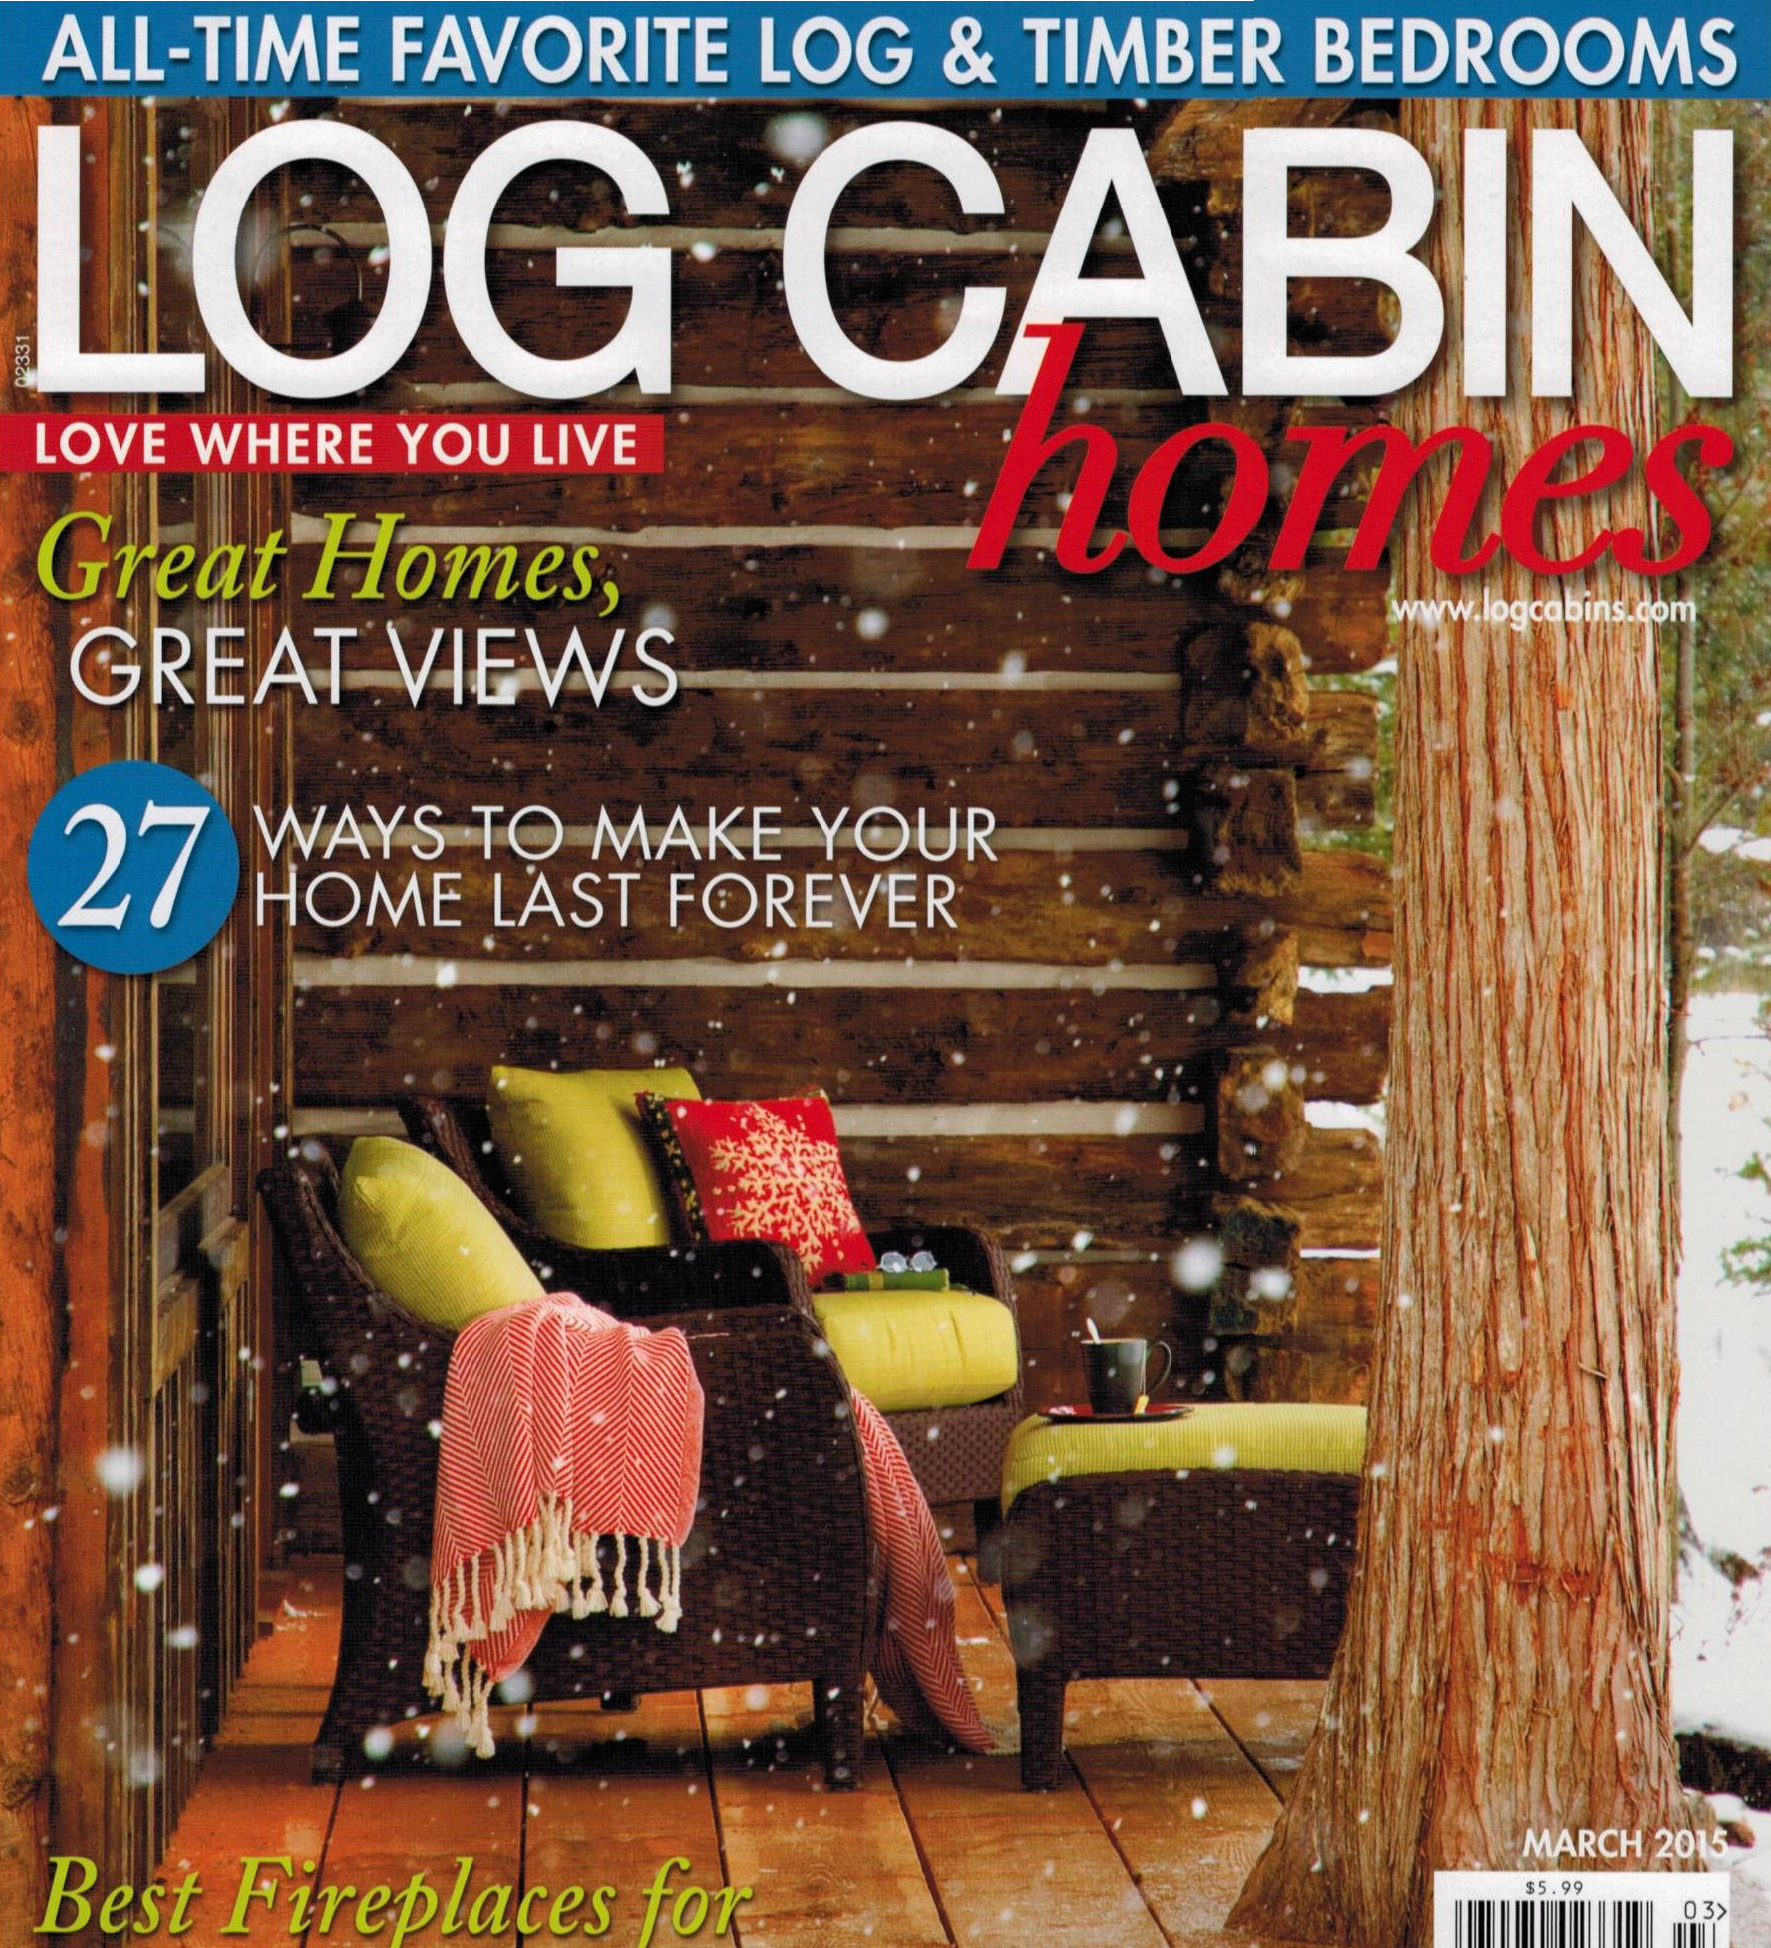 7 Log Cabin Homes-March 2015.jpg